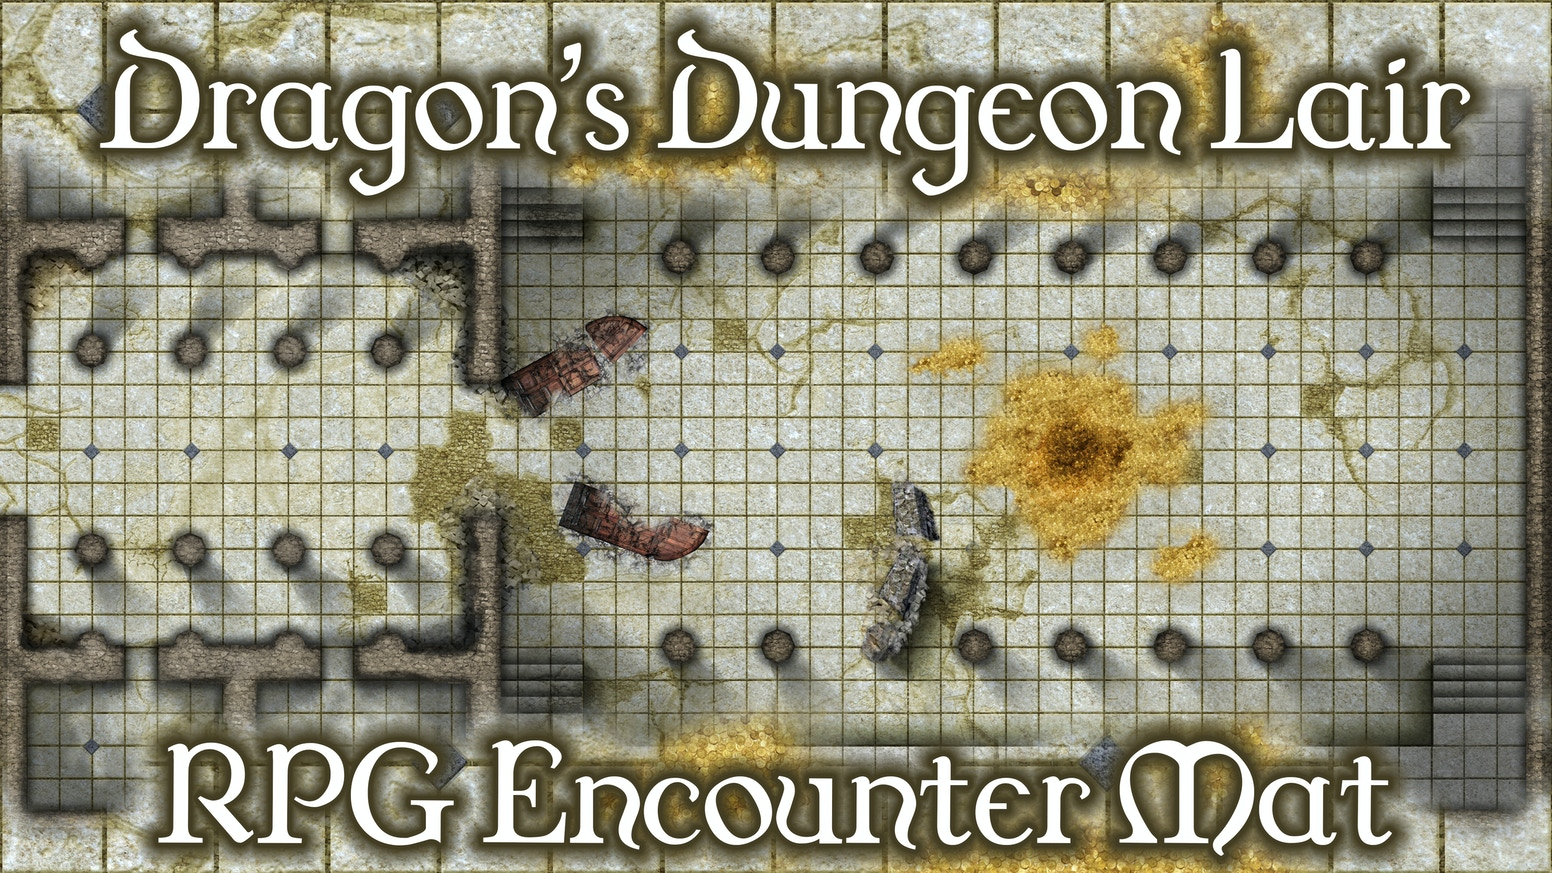 BattleMats: Dragon's Dungeon Lair Giant RPG Encounter Mat by